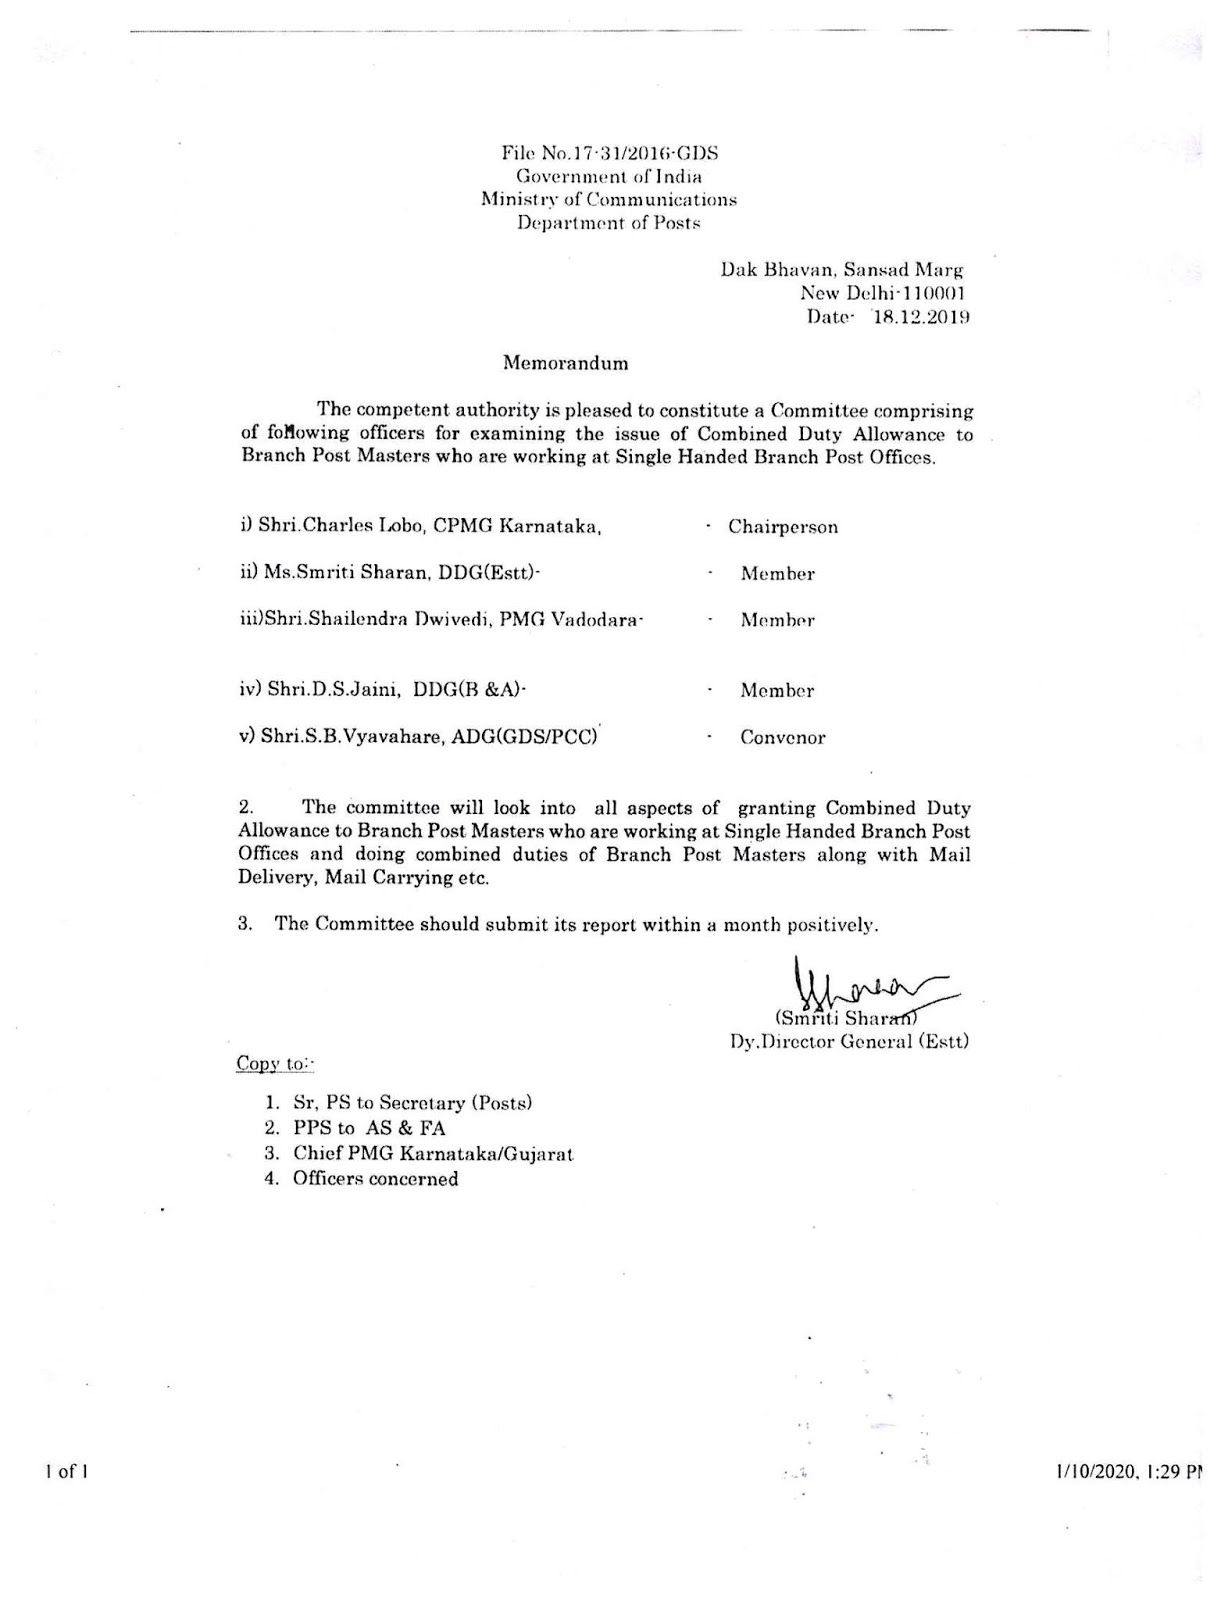 Charter of demands submitted by AIGDSU